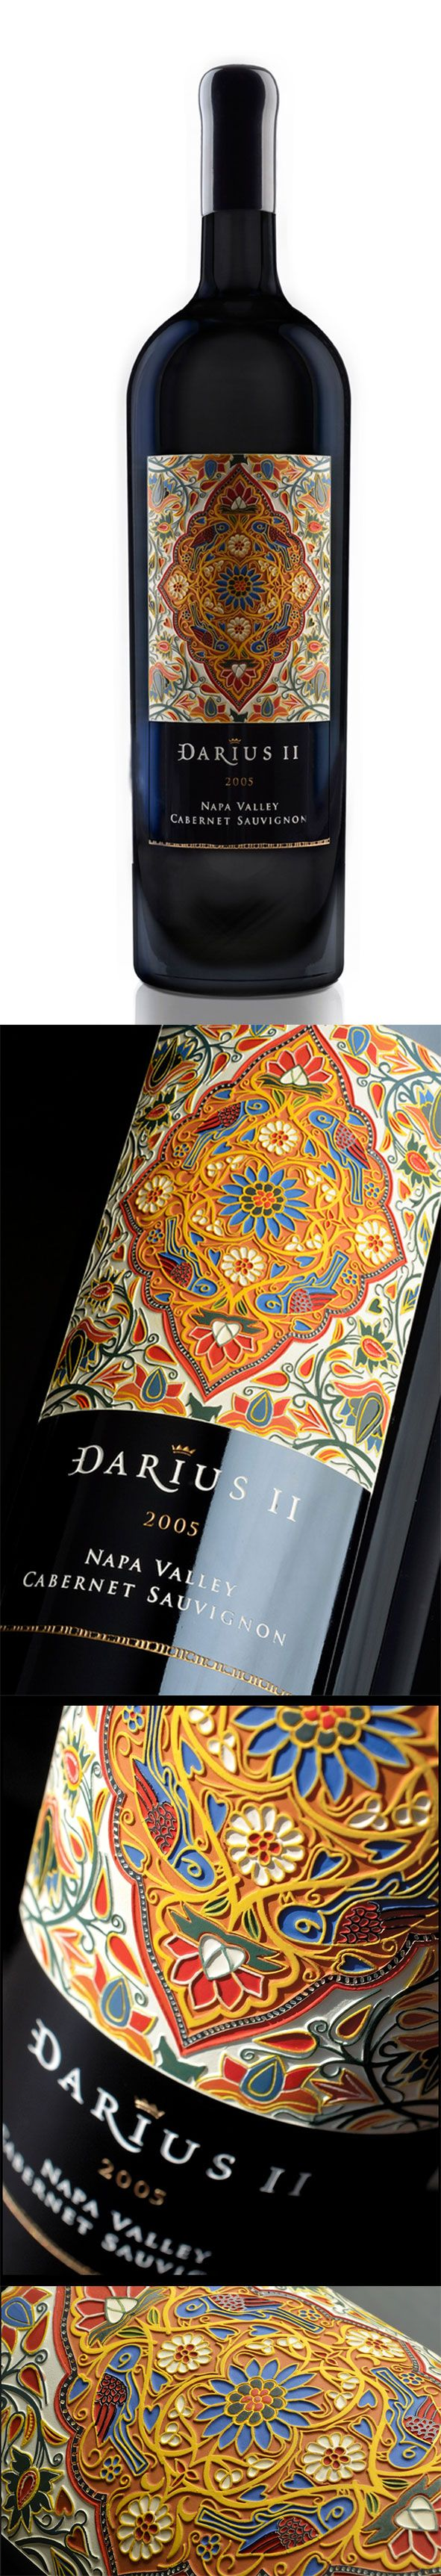 Scott Schaller Darioush Darius II Wine Label - embossing technique to expose design